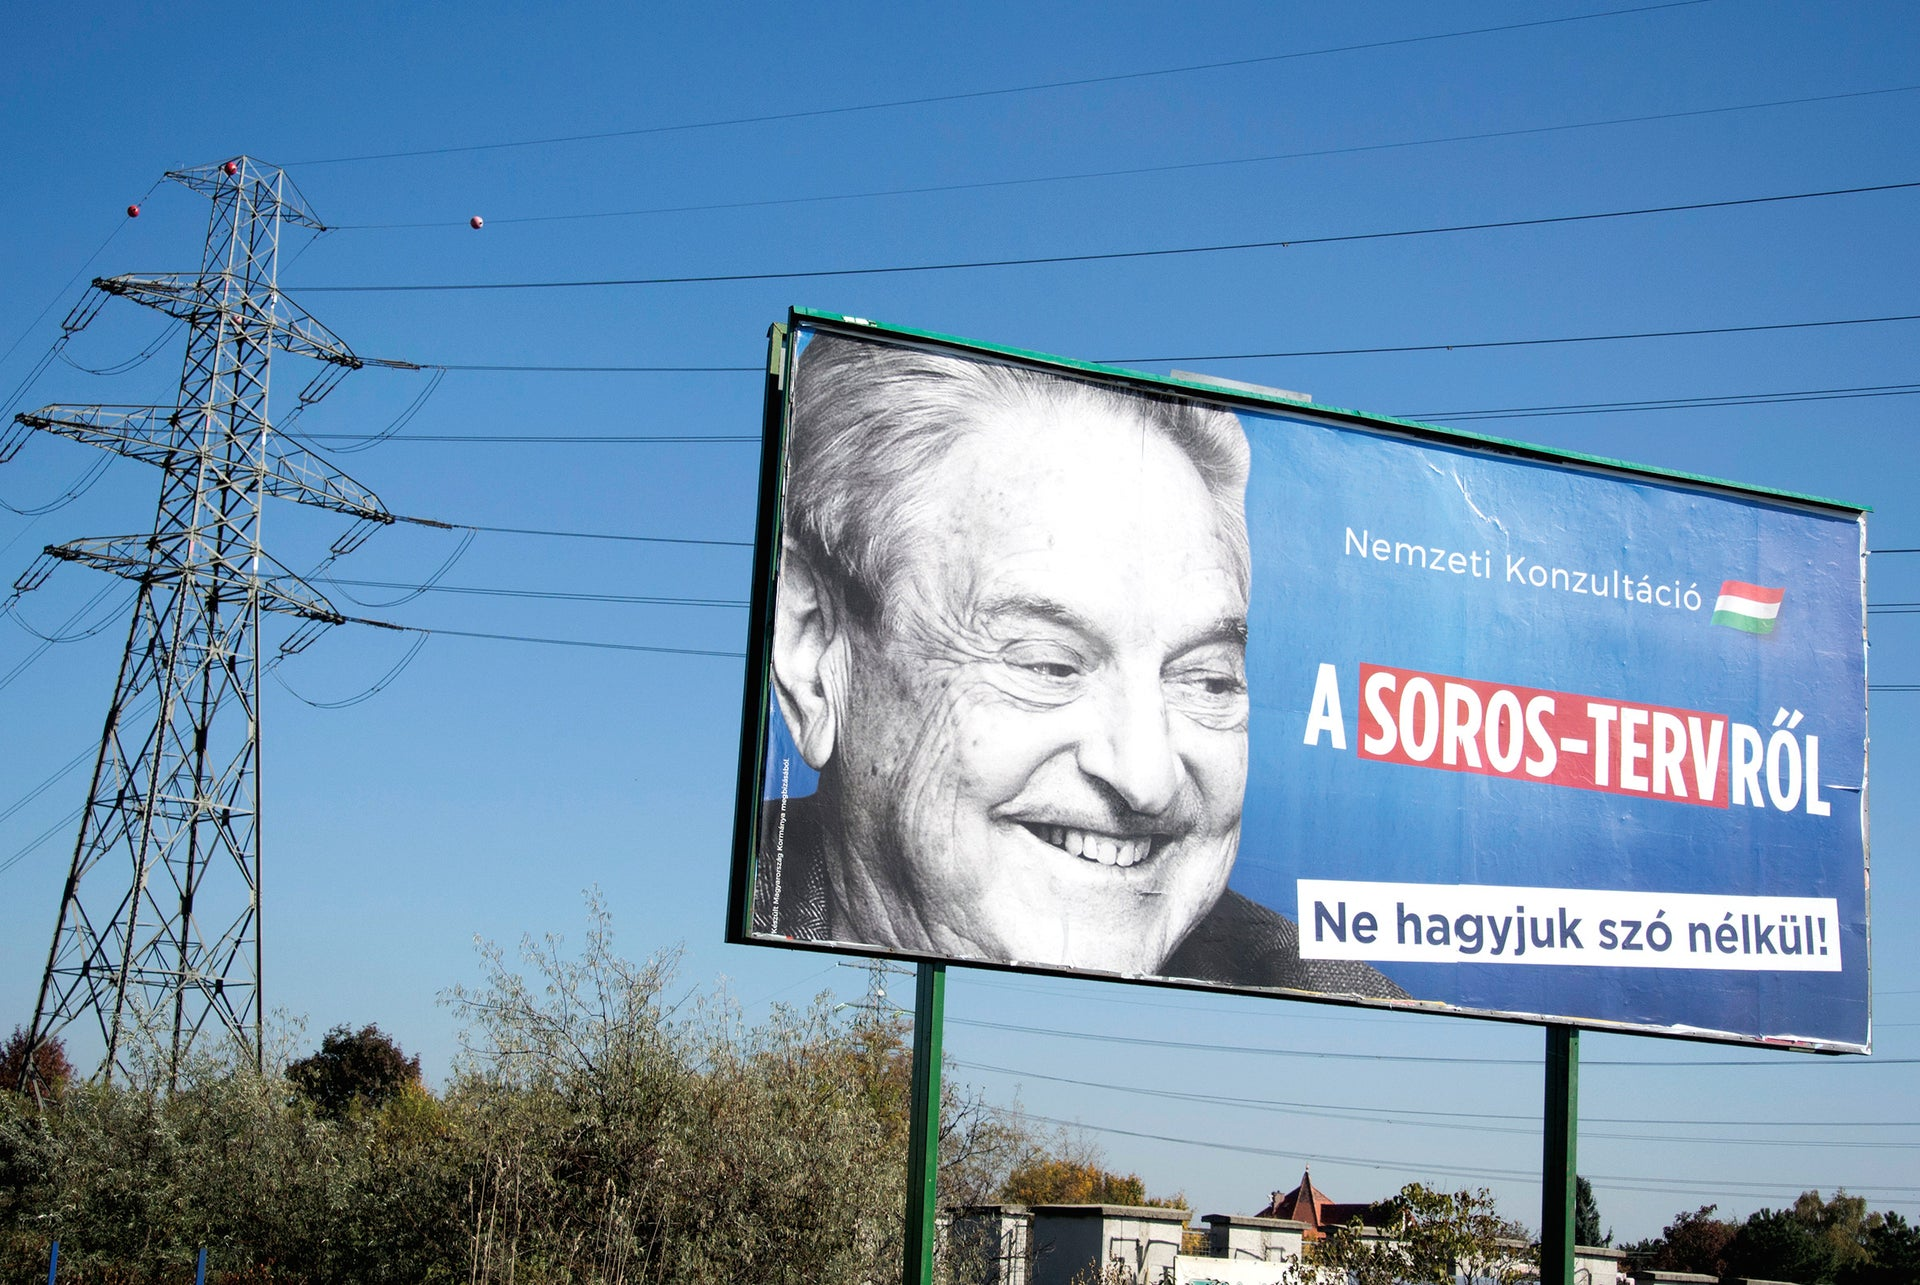 A billboard displaying George Soros urges Hungarians to take part in a national consultation about what it calls a plan by the Hungarian-born financier to settle migrants in Europe, in Budapest.